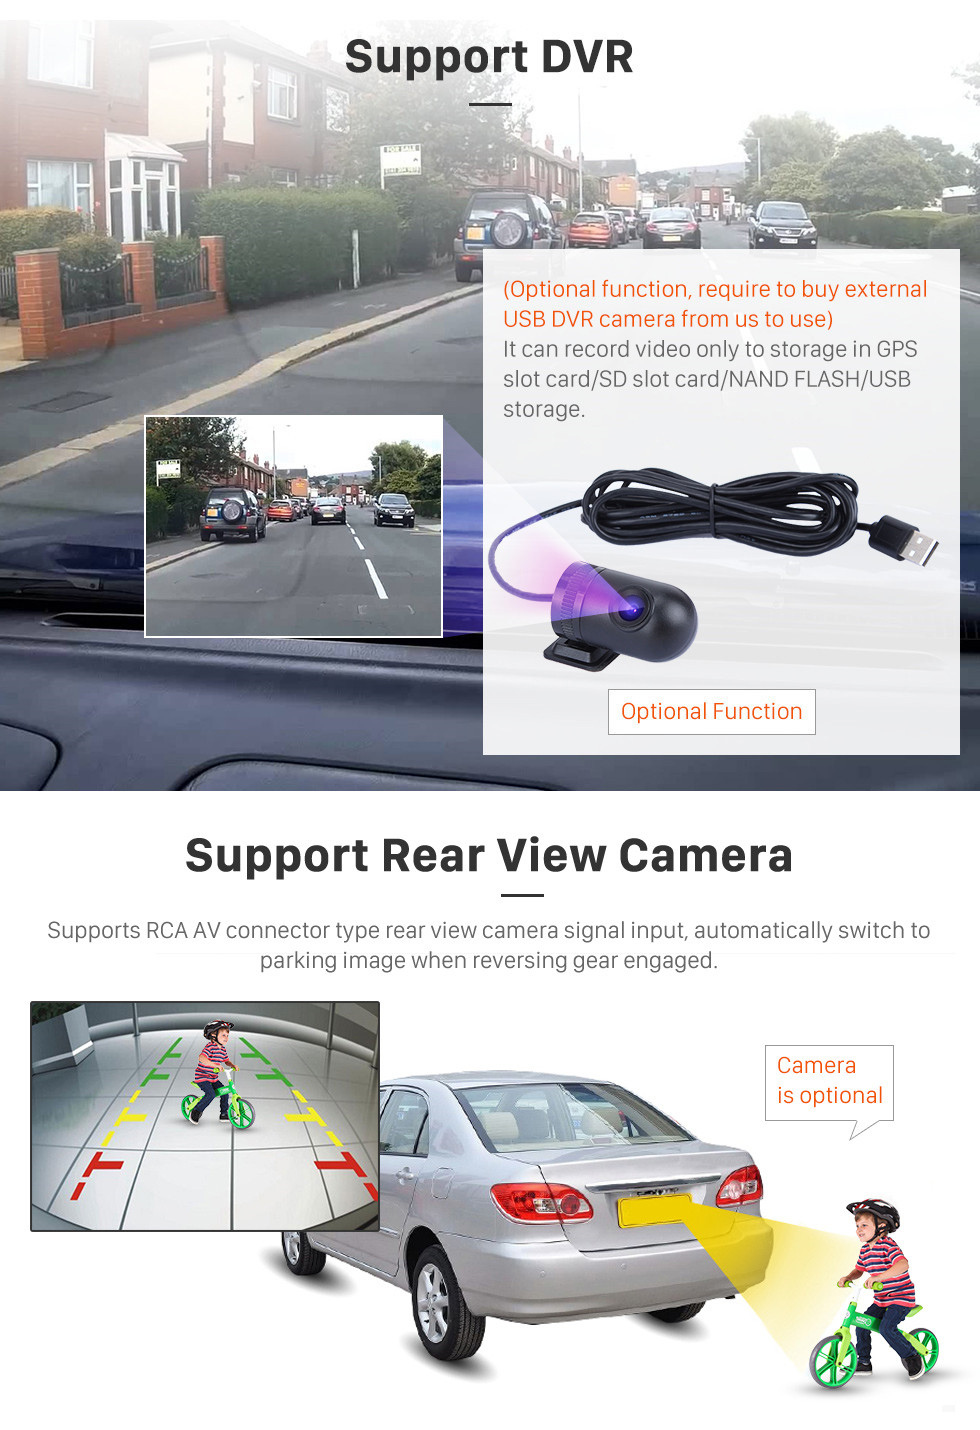 Seicane 10.1 inch Android 10.0 HD 1024*600 Touchscreen For 2011 2012 2013 2014 2015 HONDA CRV Radio GPS Navigation System with 4G wifi Bluetooth Mirror Link Digital TV OBD2 TPMS Backup Camera